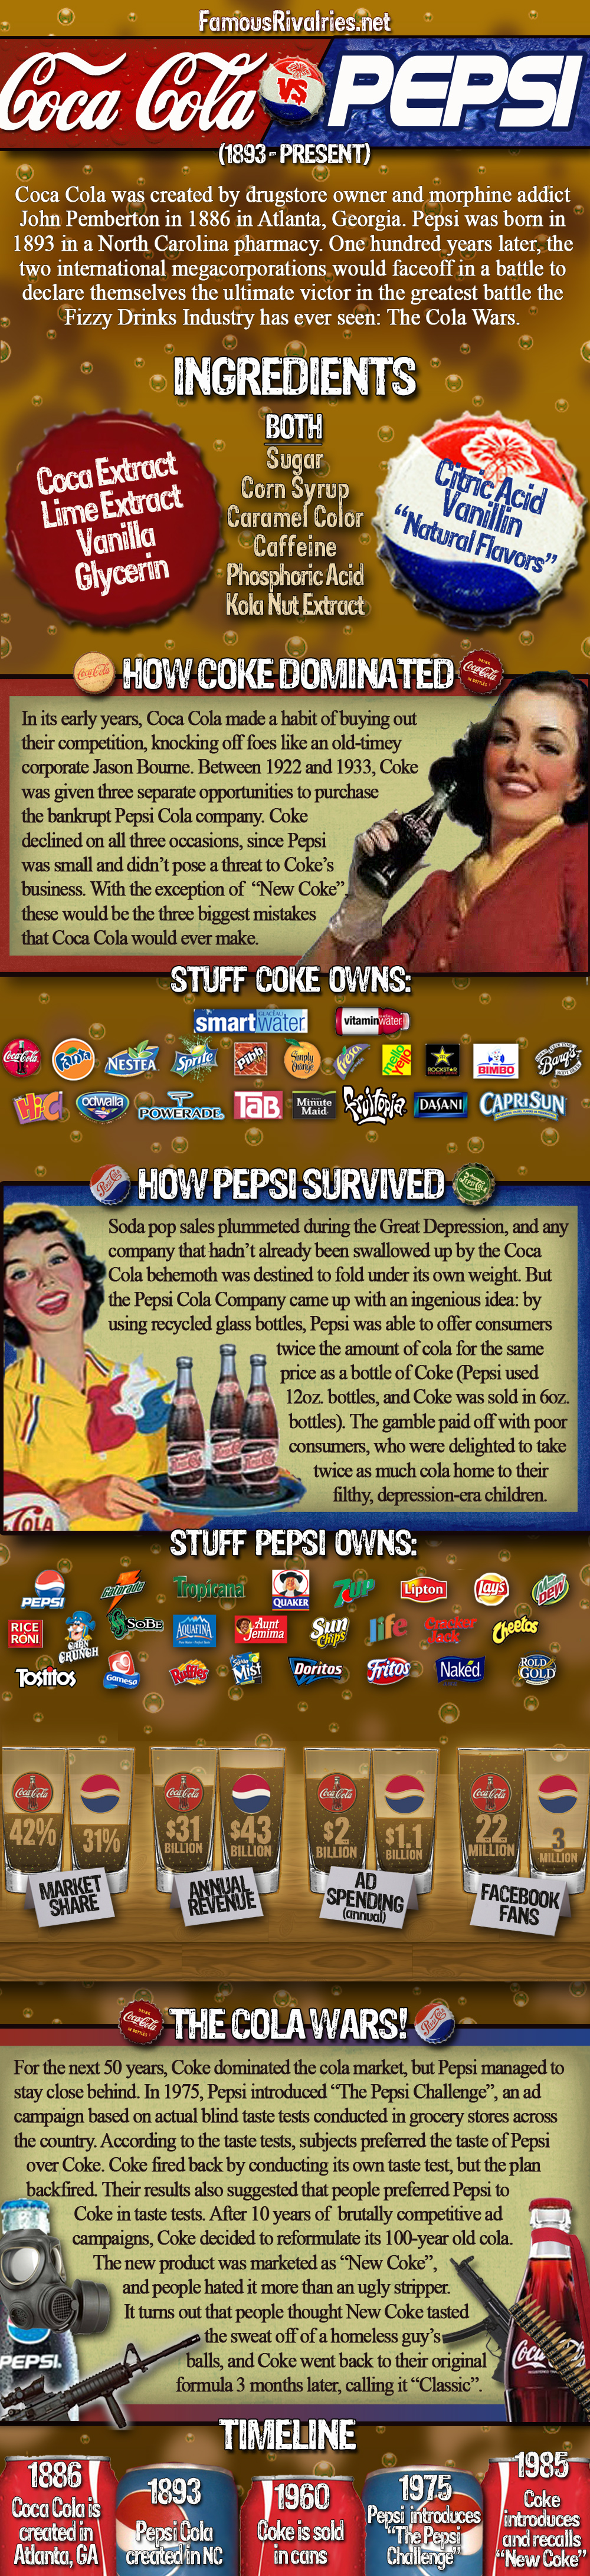 """cola wars essay I need help with this essay tutor's assistant: the writing tutor can help you get an a on your paper tell me more about what you need help with so we can help you best based on the case """"cola wars continue: coke and pepsi in 2010,"""" use game theory approach/analysis to explain the competitive behavior of coke and pepsi making specific references to actions taken by each firm and the."""